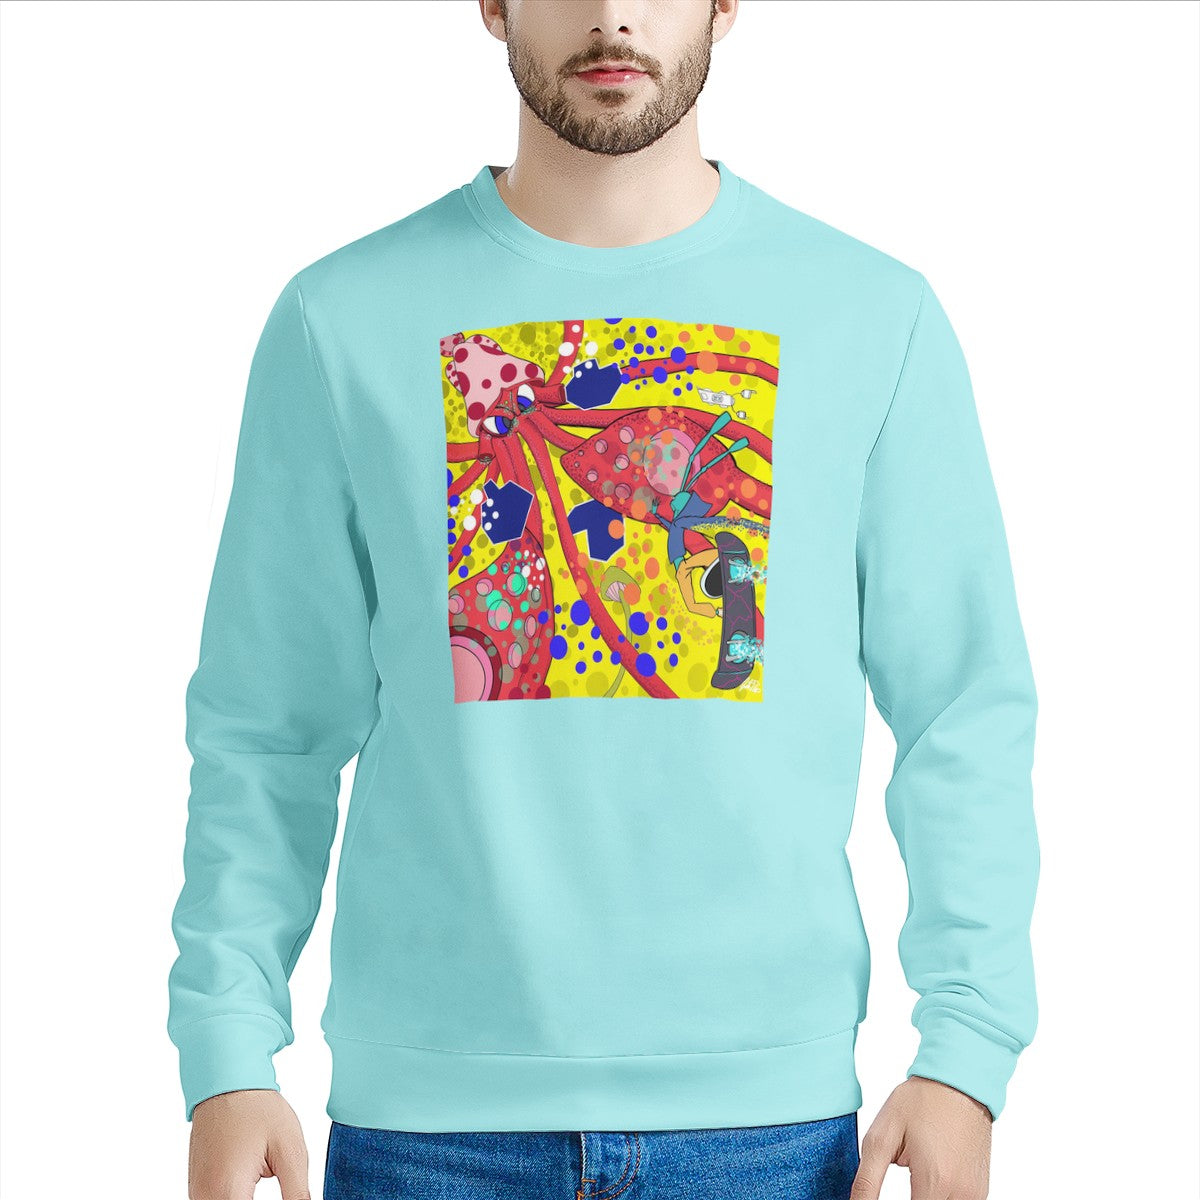 The Return of the Octo Sweater Men's Sweater